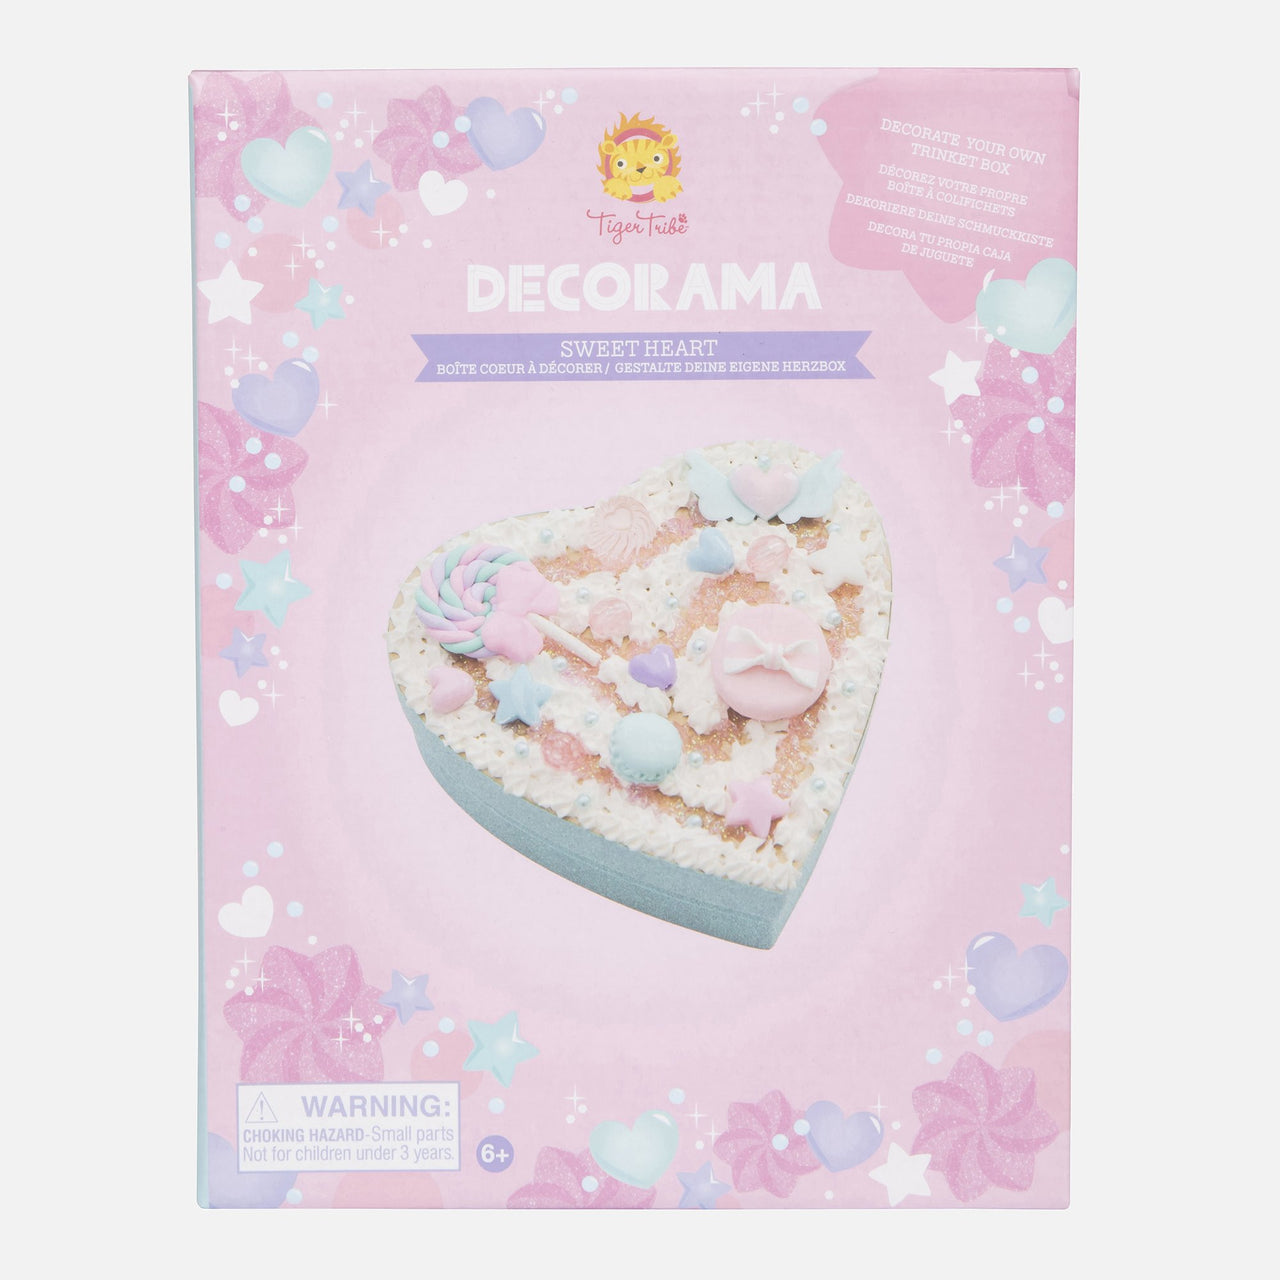 Decorama - Sweet Heart